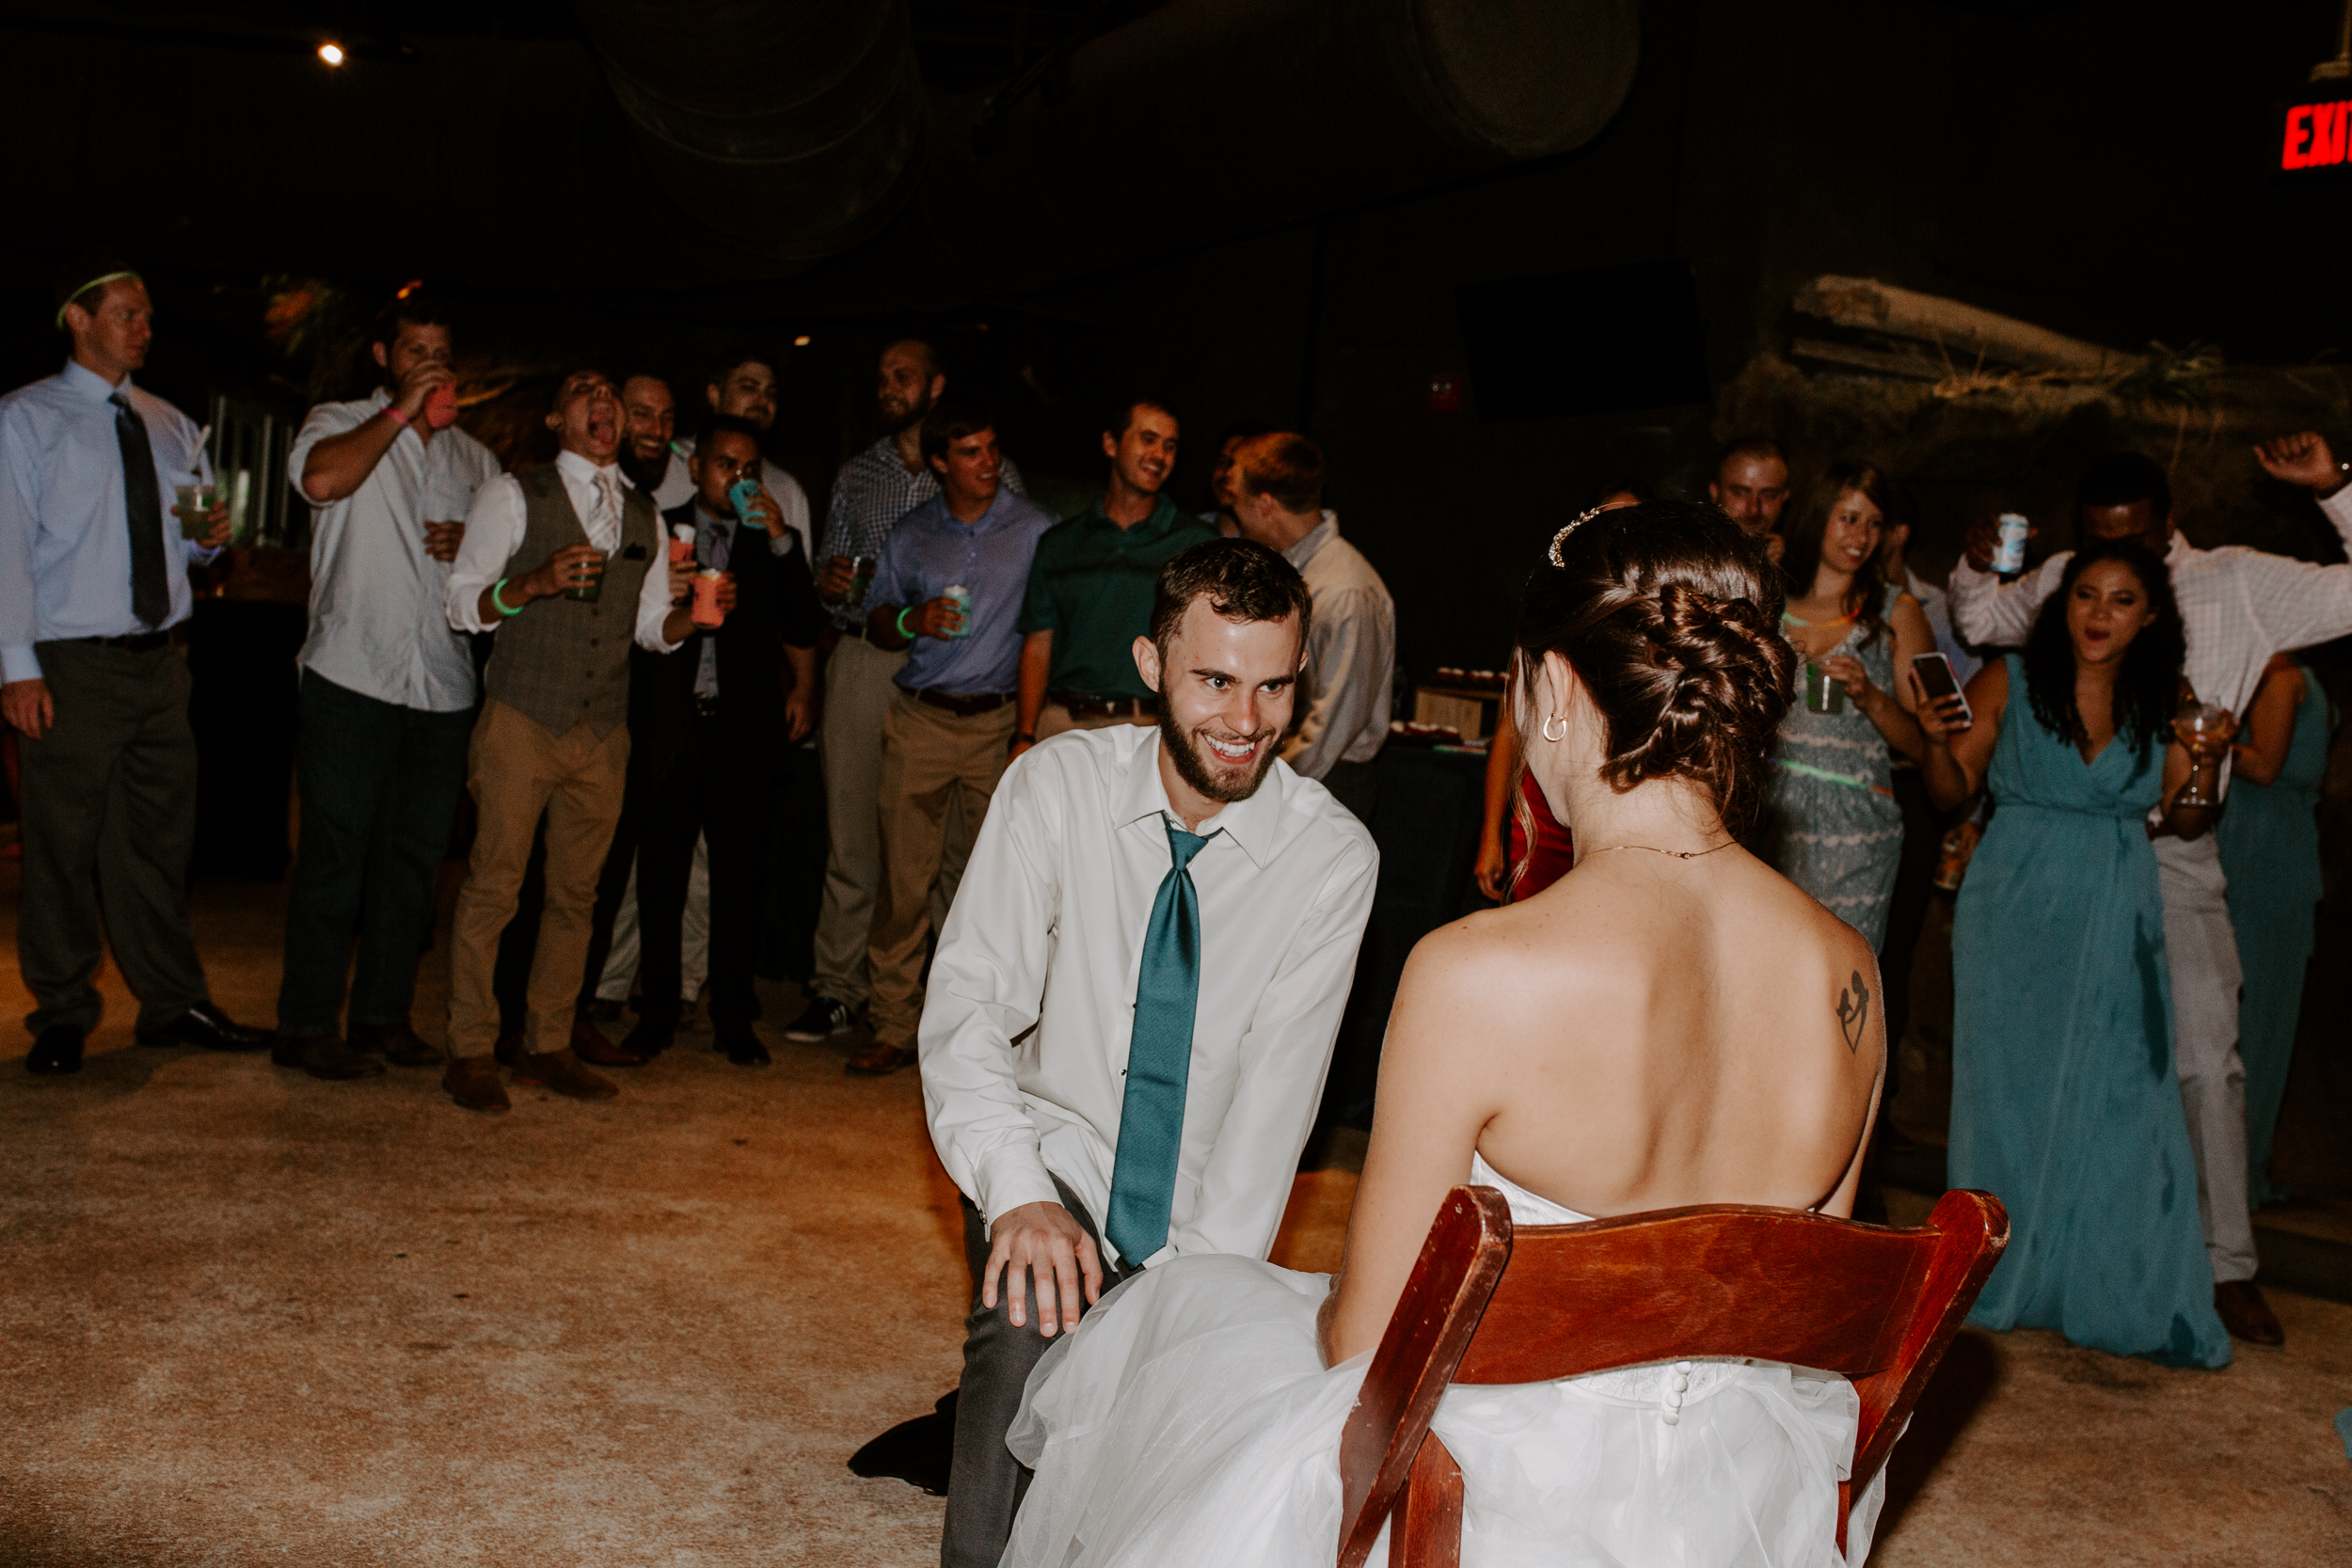 Morrow_Wedding_Reception_2018-64.jpg